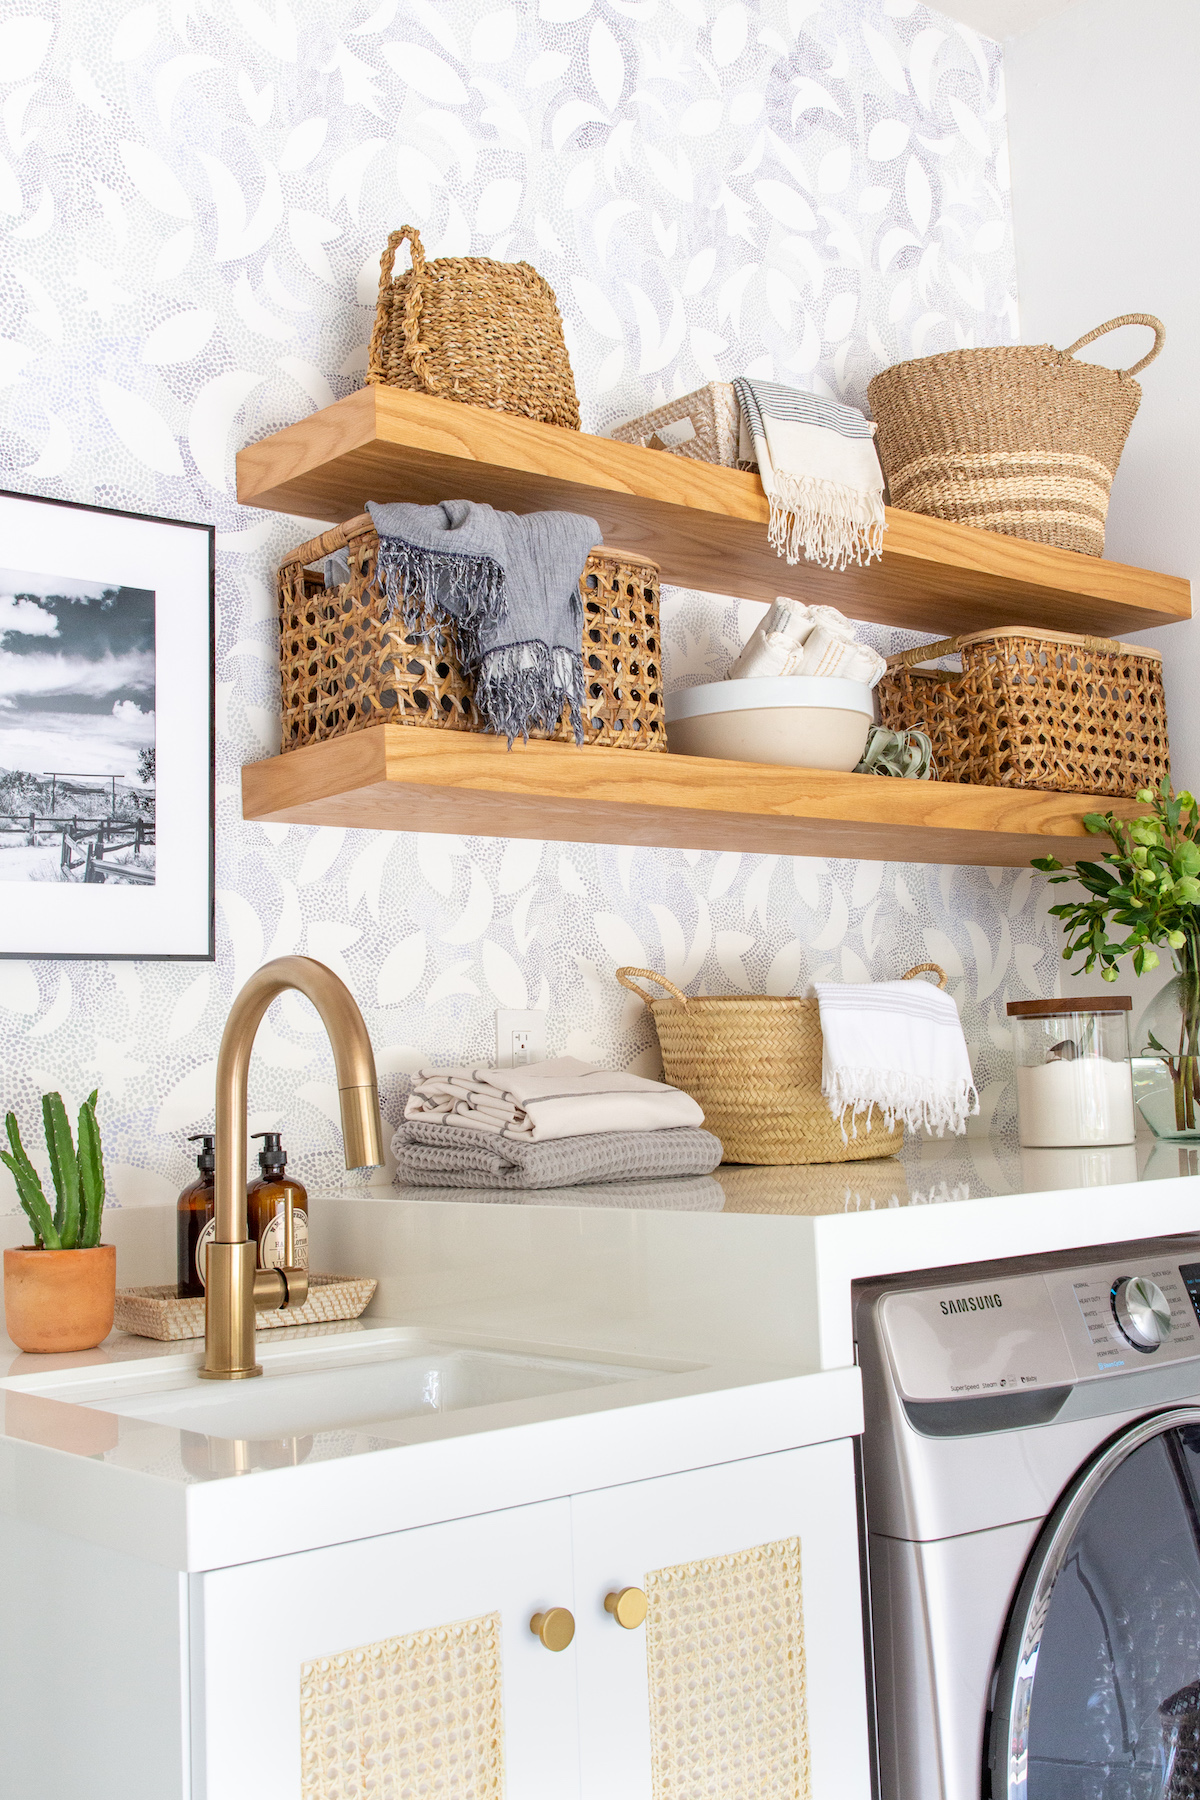 Laundry room makeover with open shelving